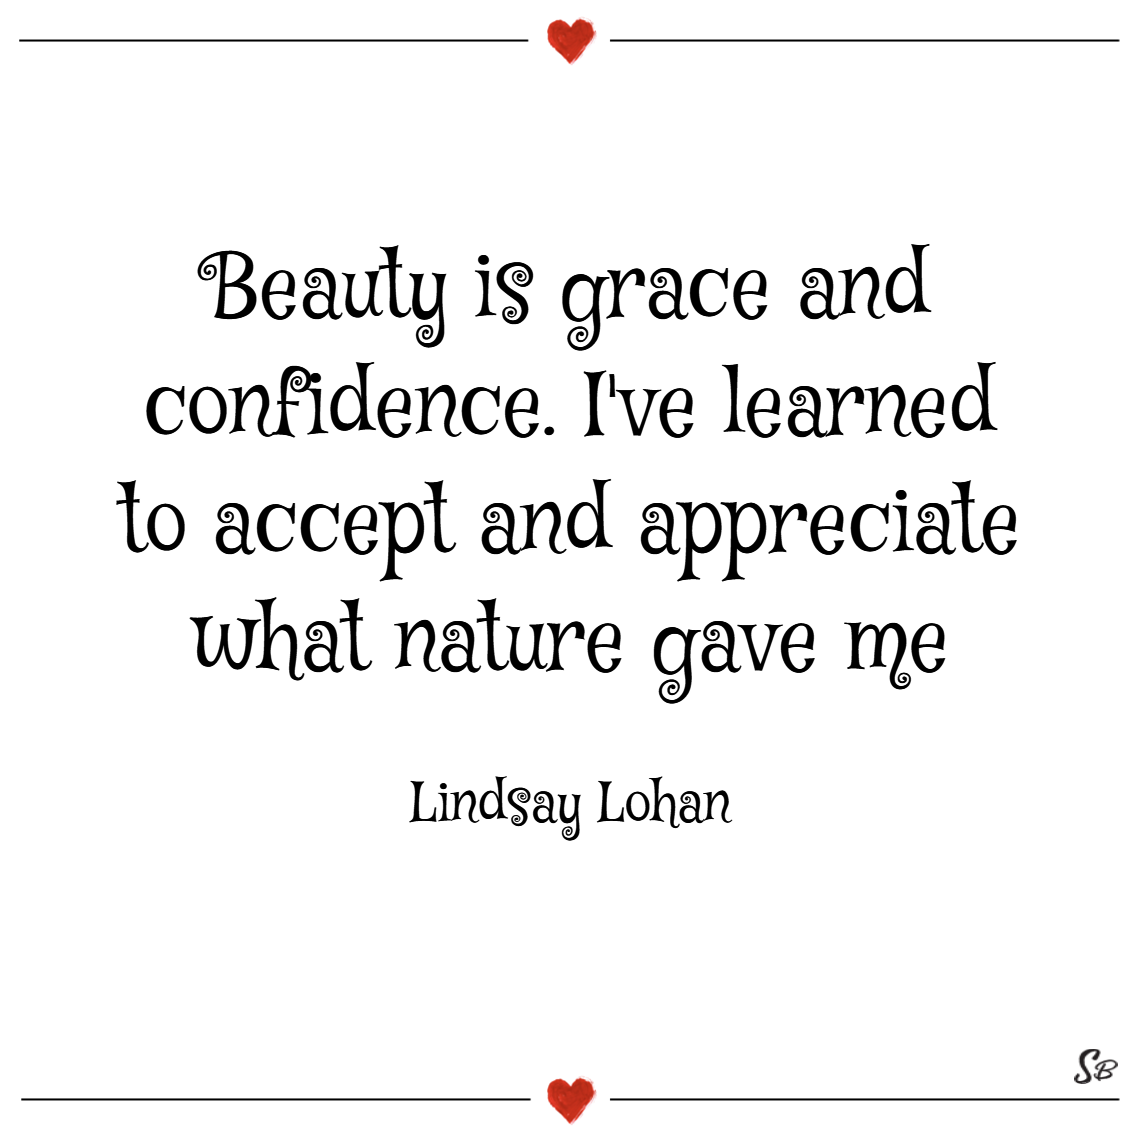 Beauty is grace and confidence. i've learned to accept and appreciate what nature gave me. – lindsay lohan